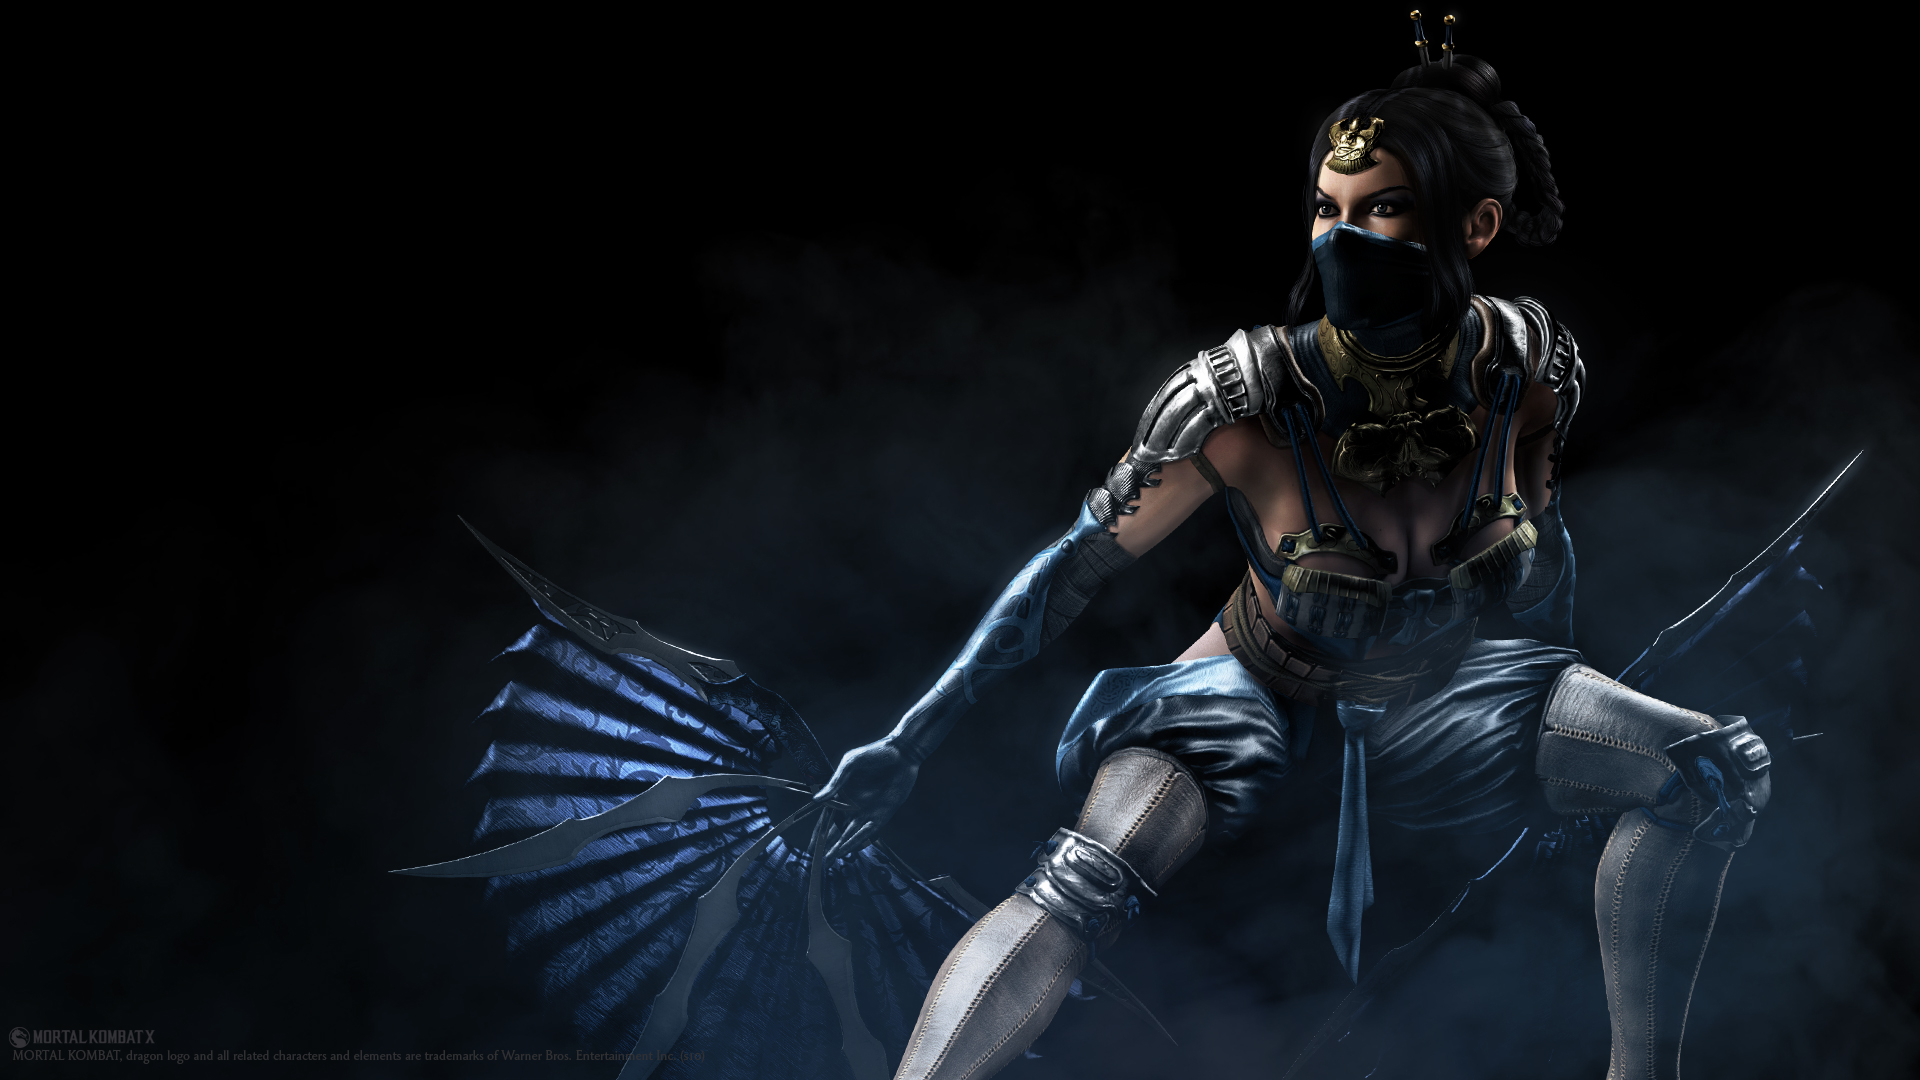 Mortal Kombat X wallpaper 3